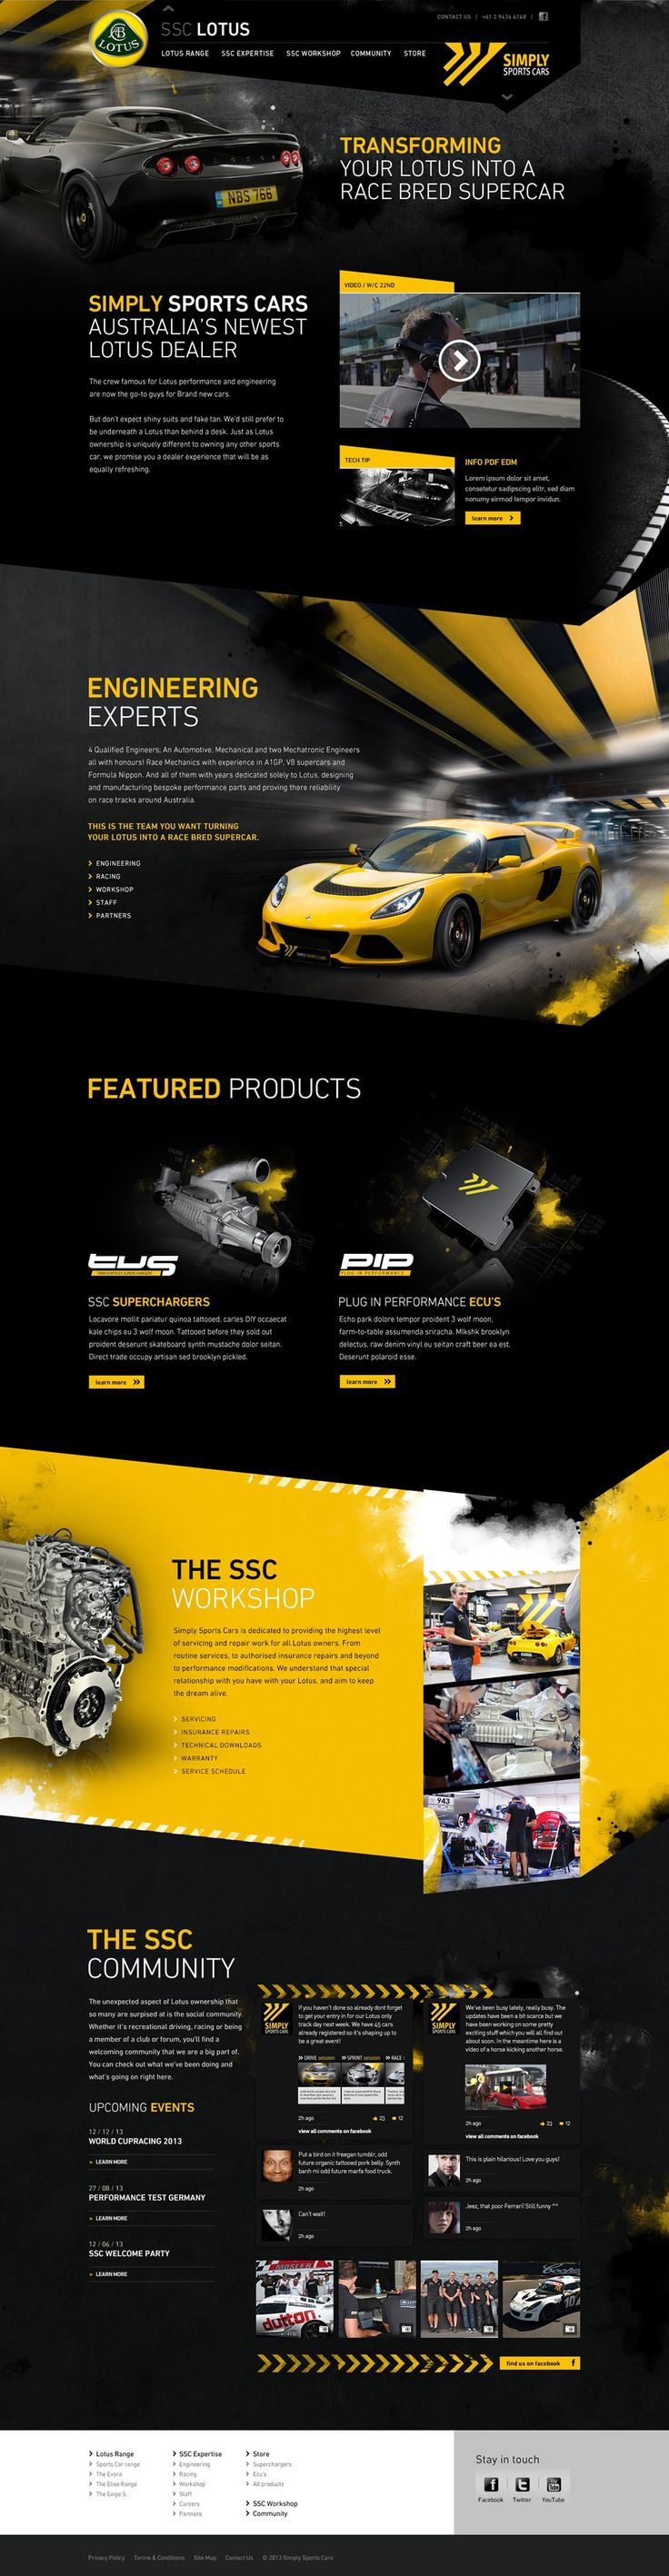 SSC LOTUS. Simply Sports Cars. Awesome website. Love the loading.